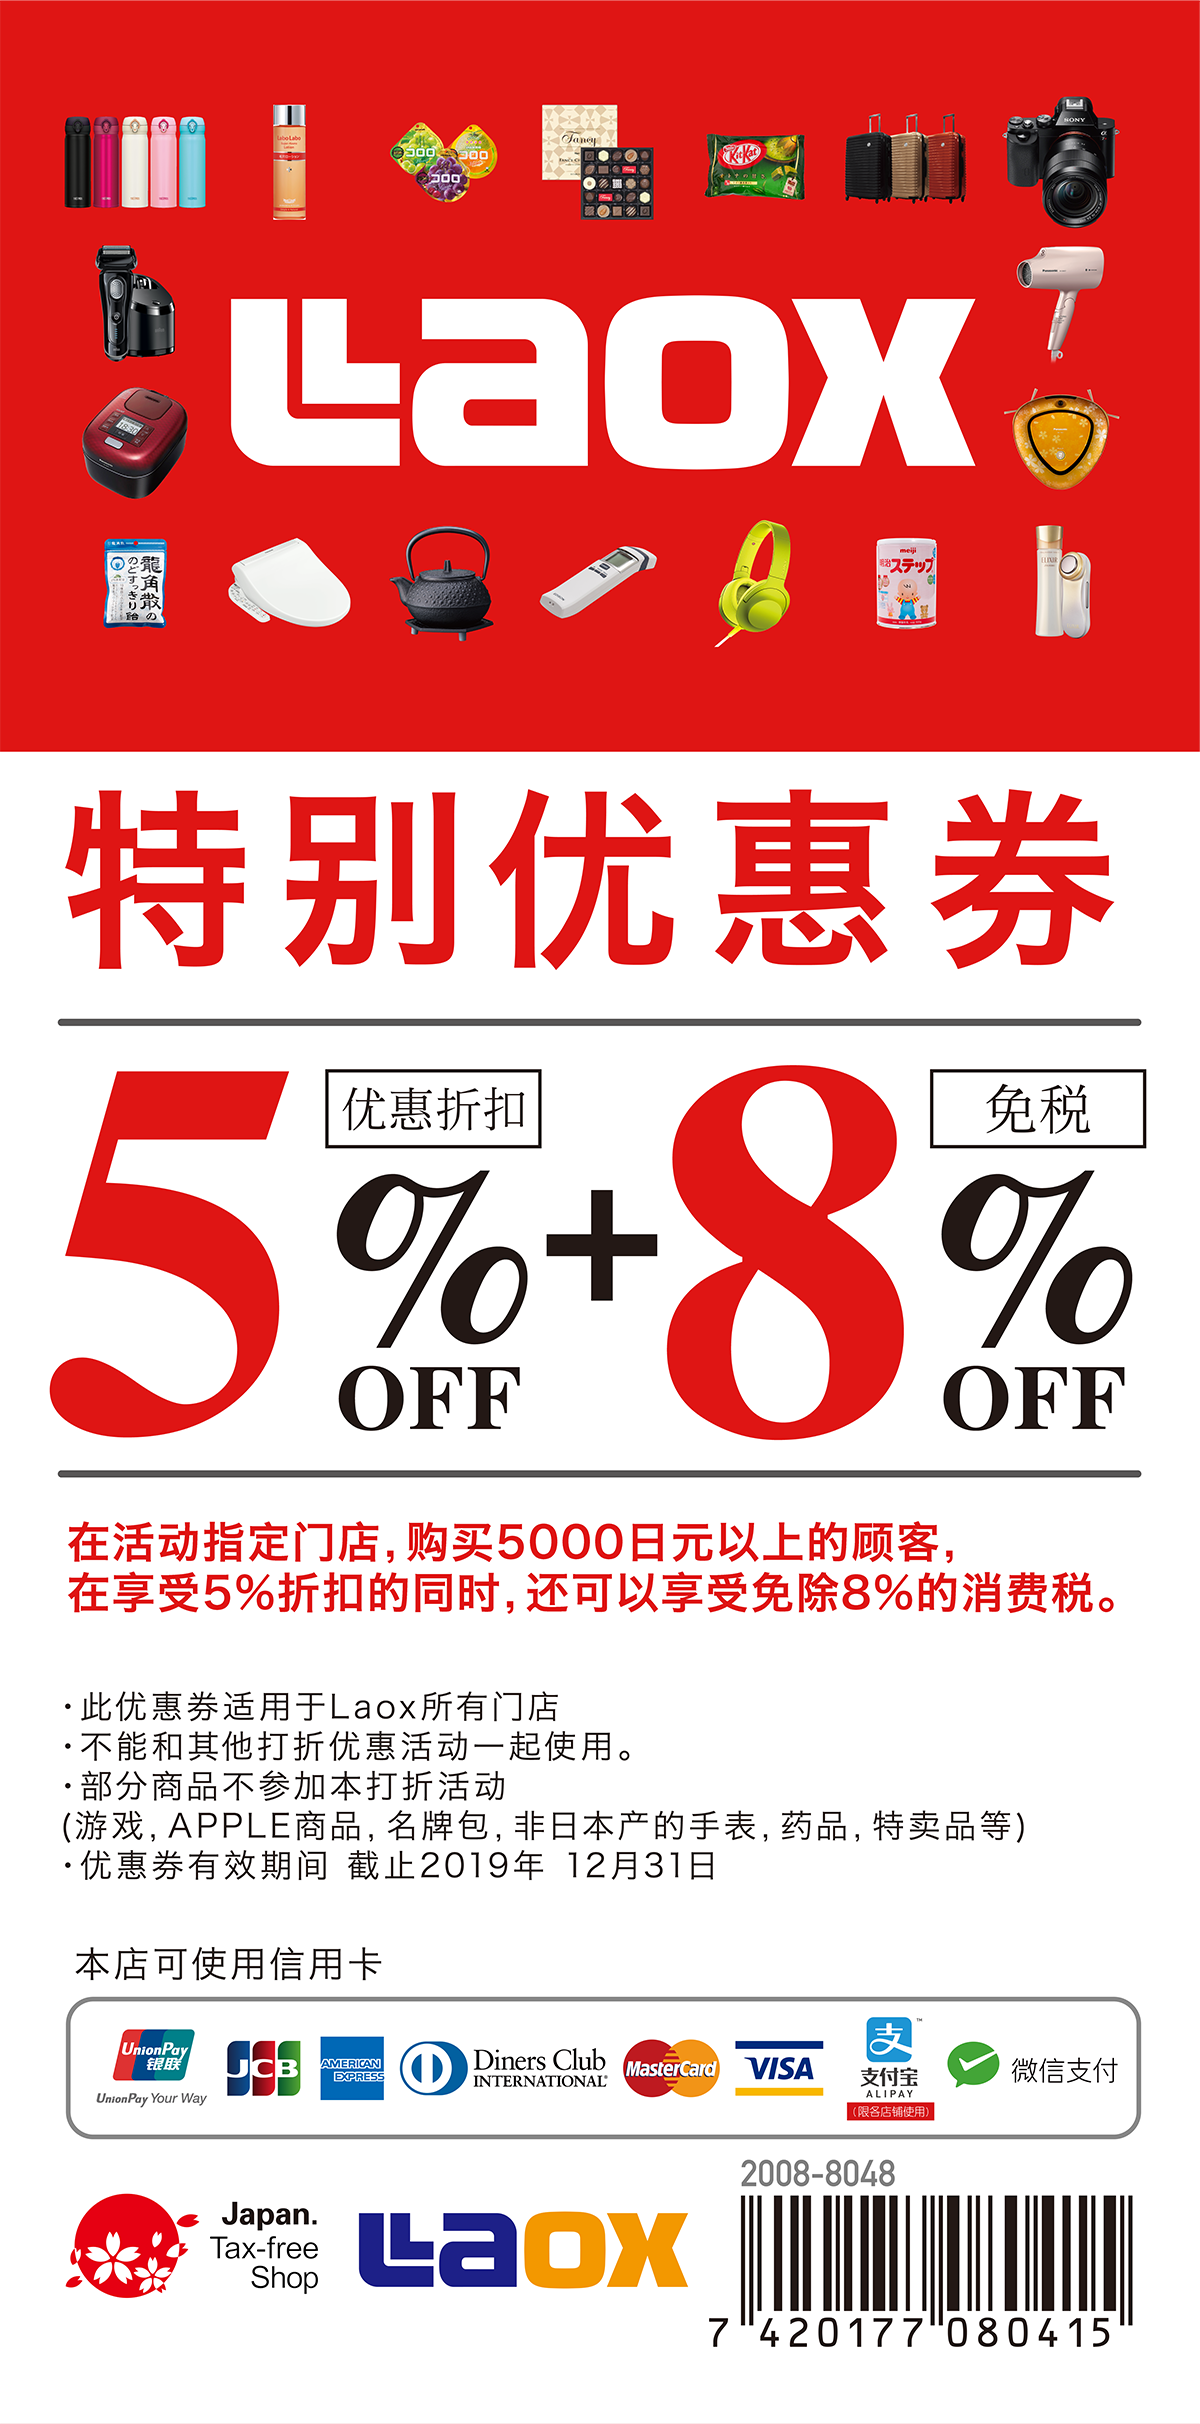 5%OFF(coupon discount)+ 8%OFF(tax-exemption)